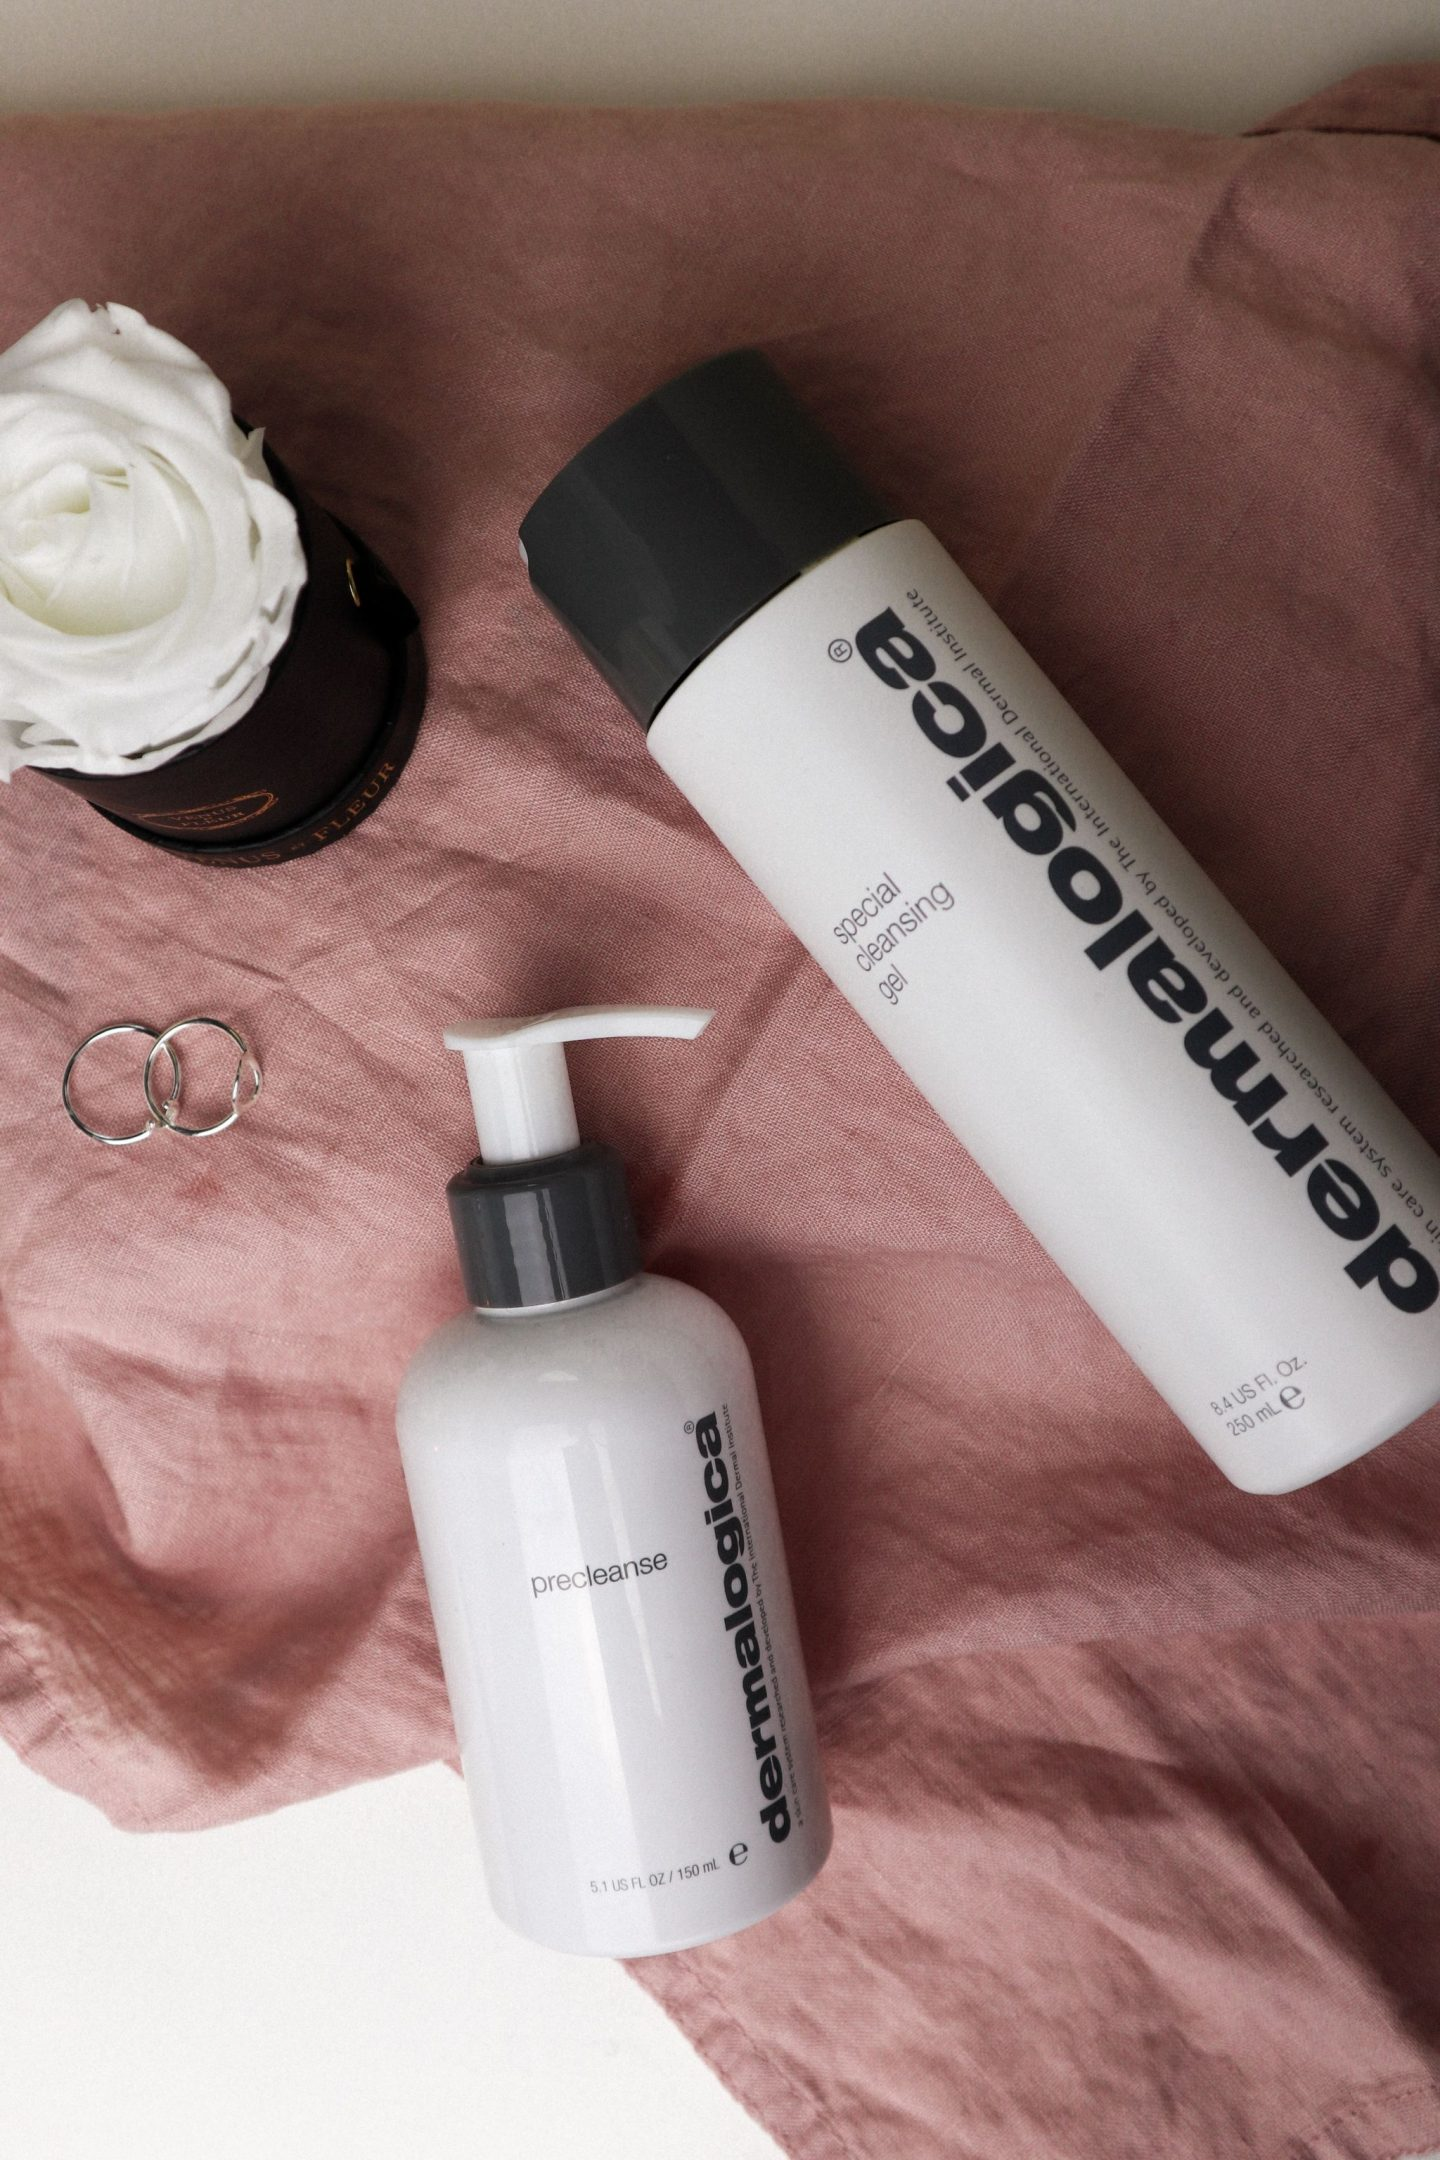 which products to use for double cleansing- dermalogica precleanse and special cleansing gel on pink surface